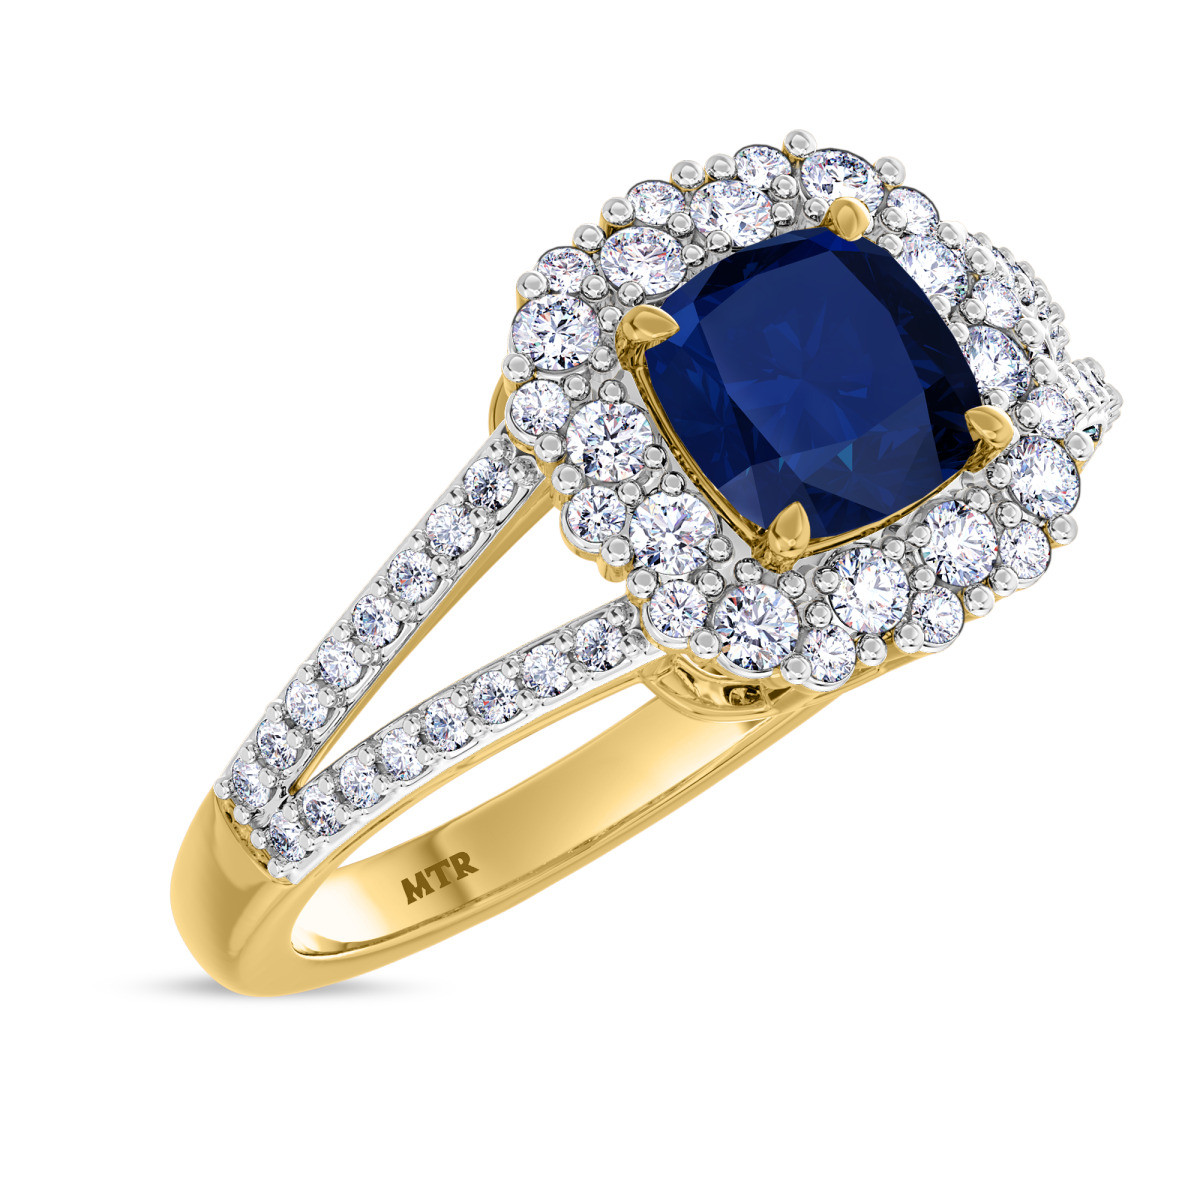 1/7 CT. T.W. Diamond Engagement Ring 10K Yellow Gold